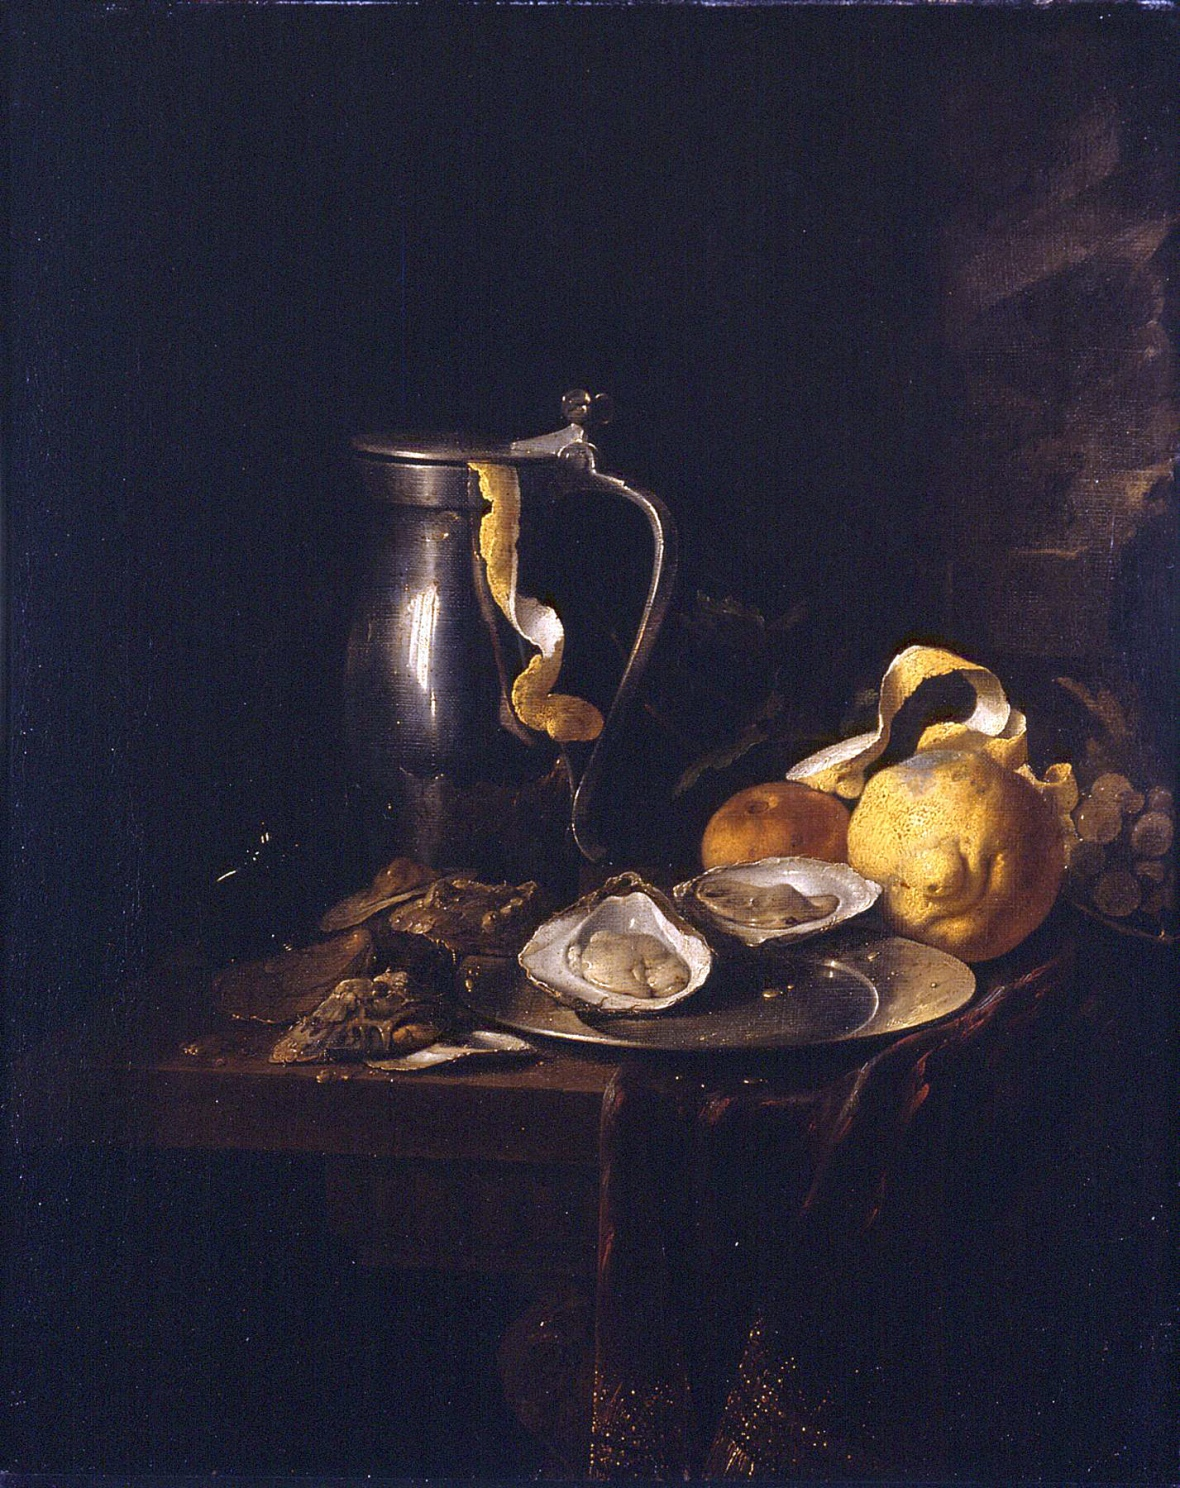 Still Life with a Pewter Jug, Oysters, and a Lemon, 1633